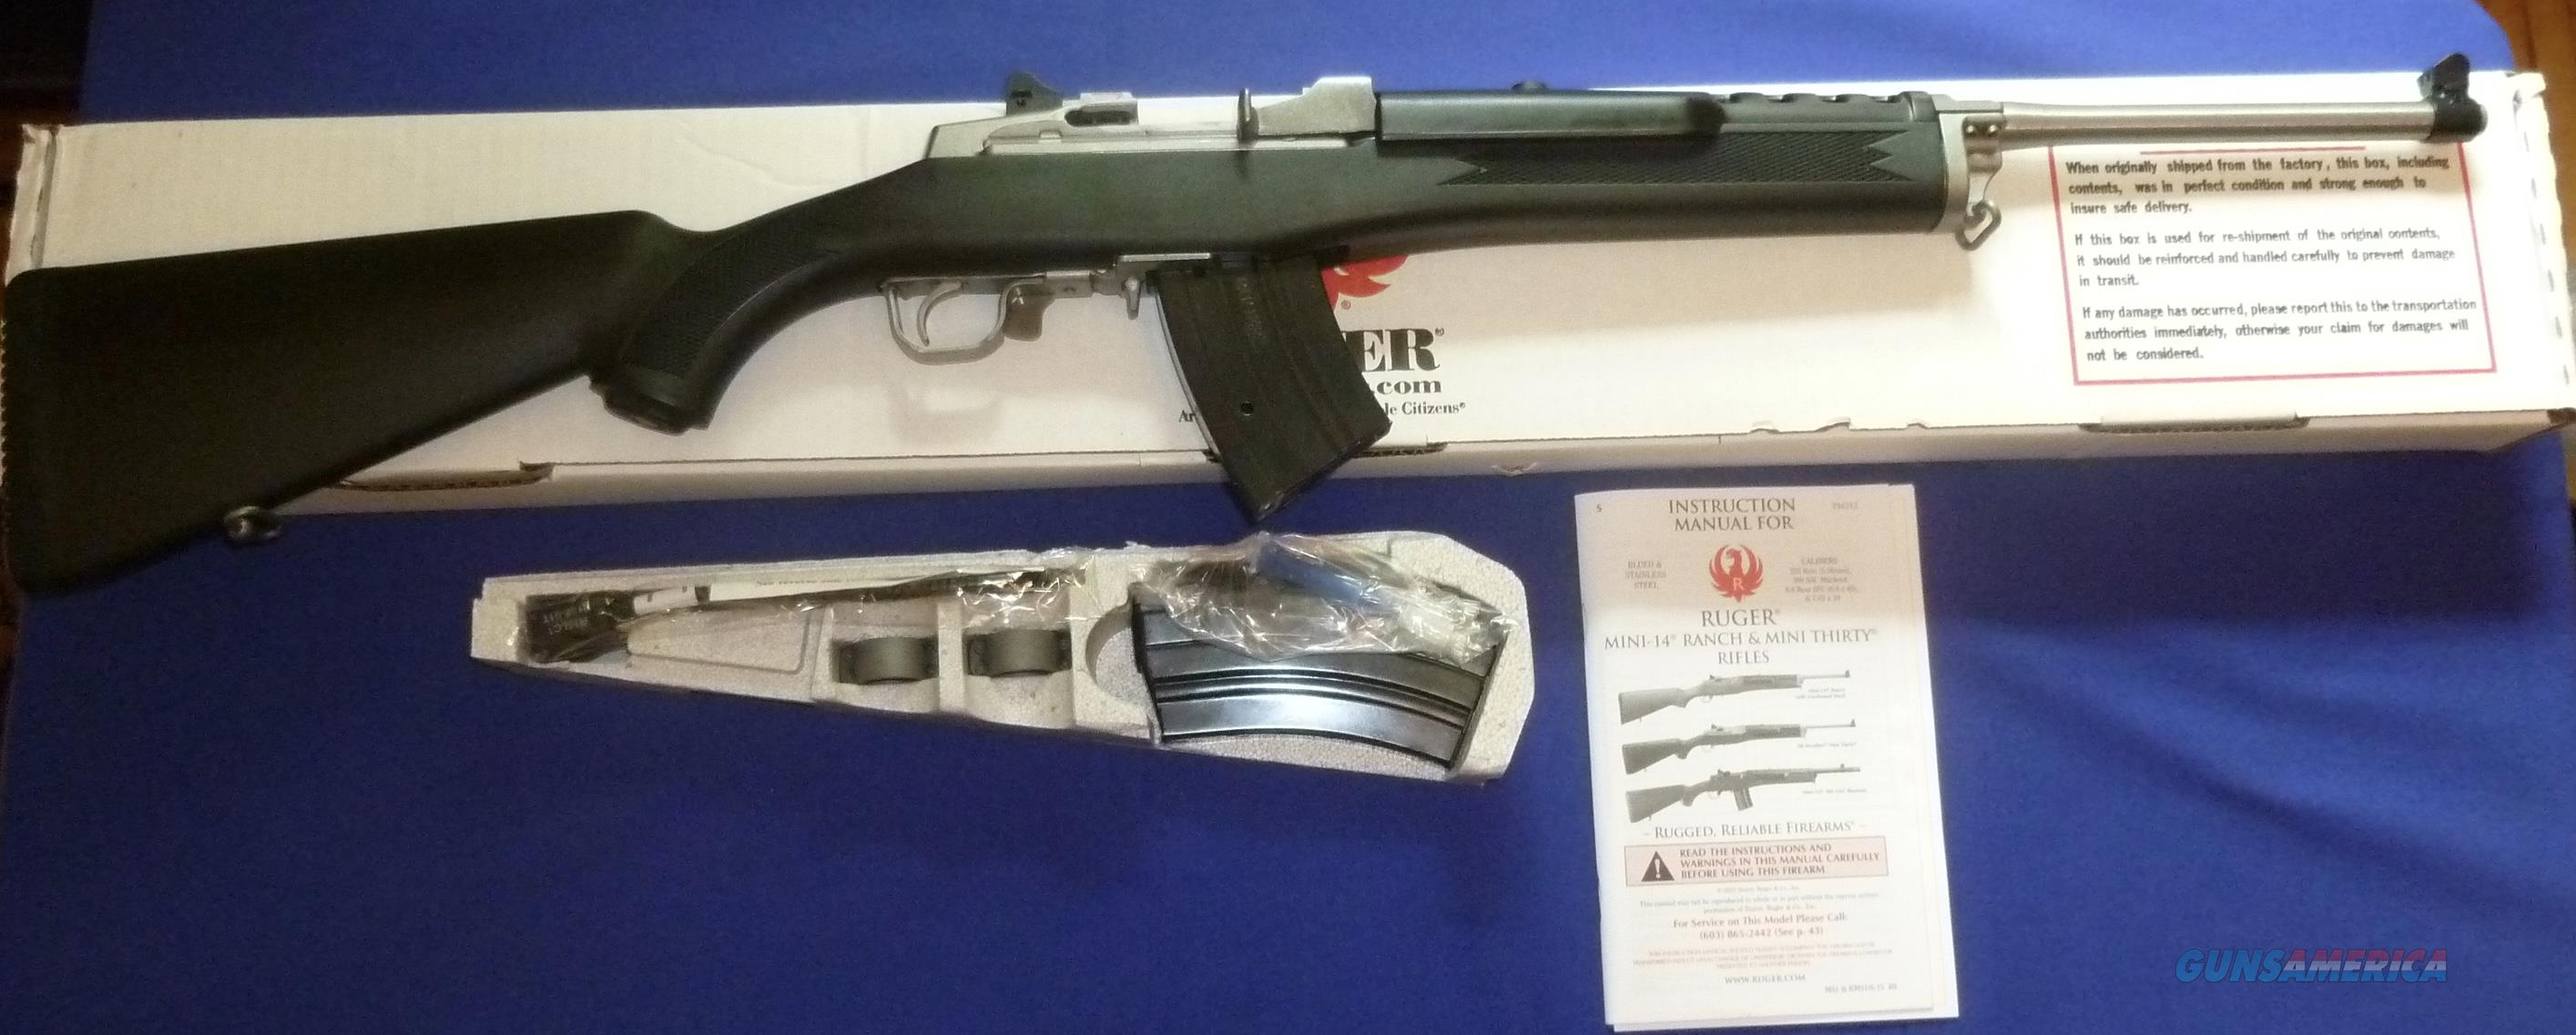 RUGER MINI-30/20 7.62X29 CALIBER SEMI-AUTO RIFLE STAINLESS STEEL NEW!  Guns > Rifles > Ruger Rifles > Mini-14 Type